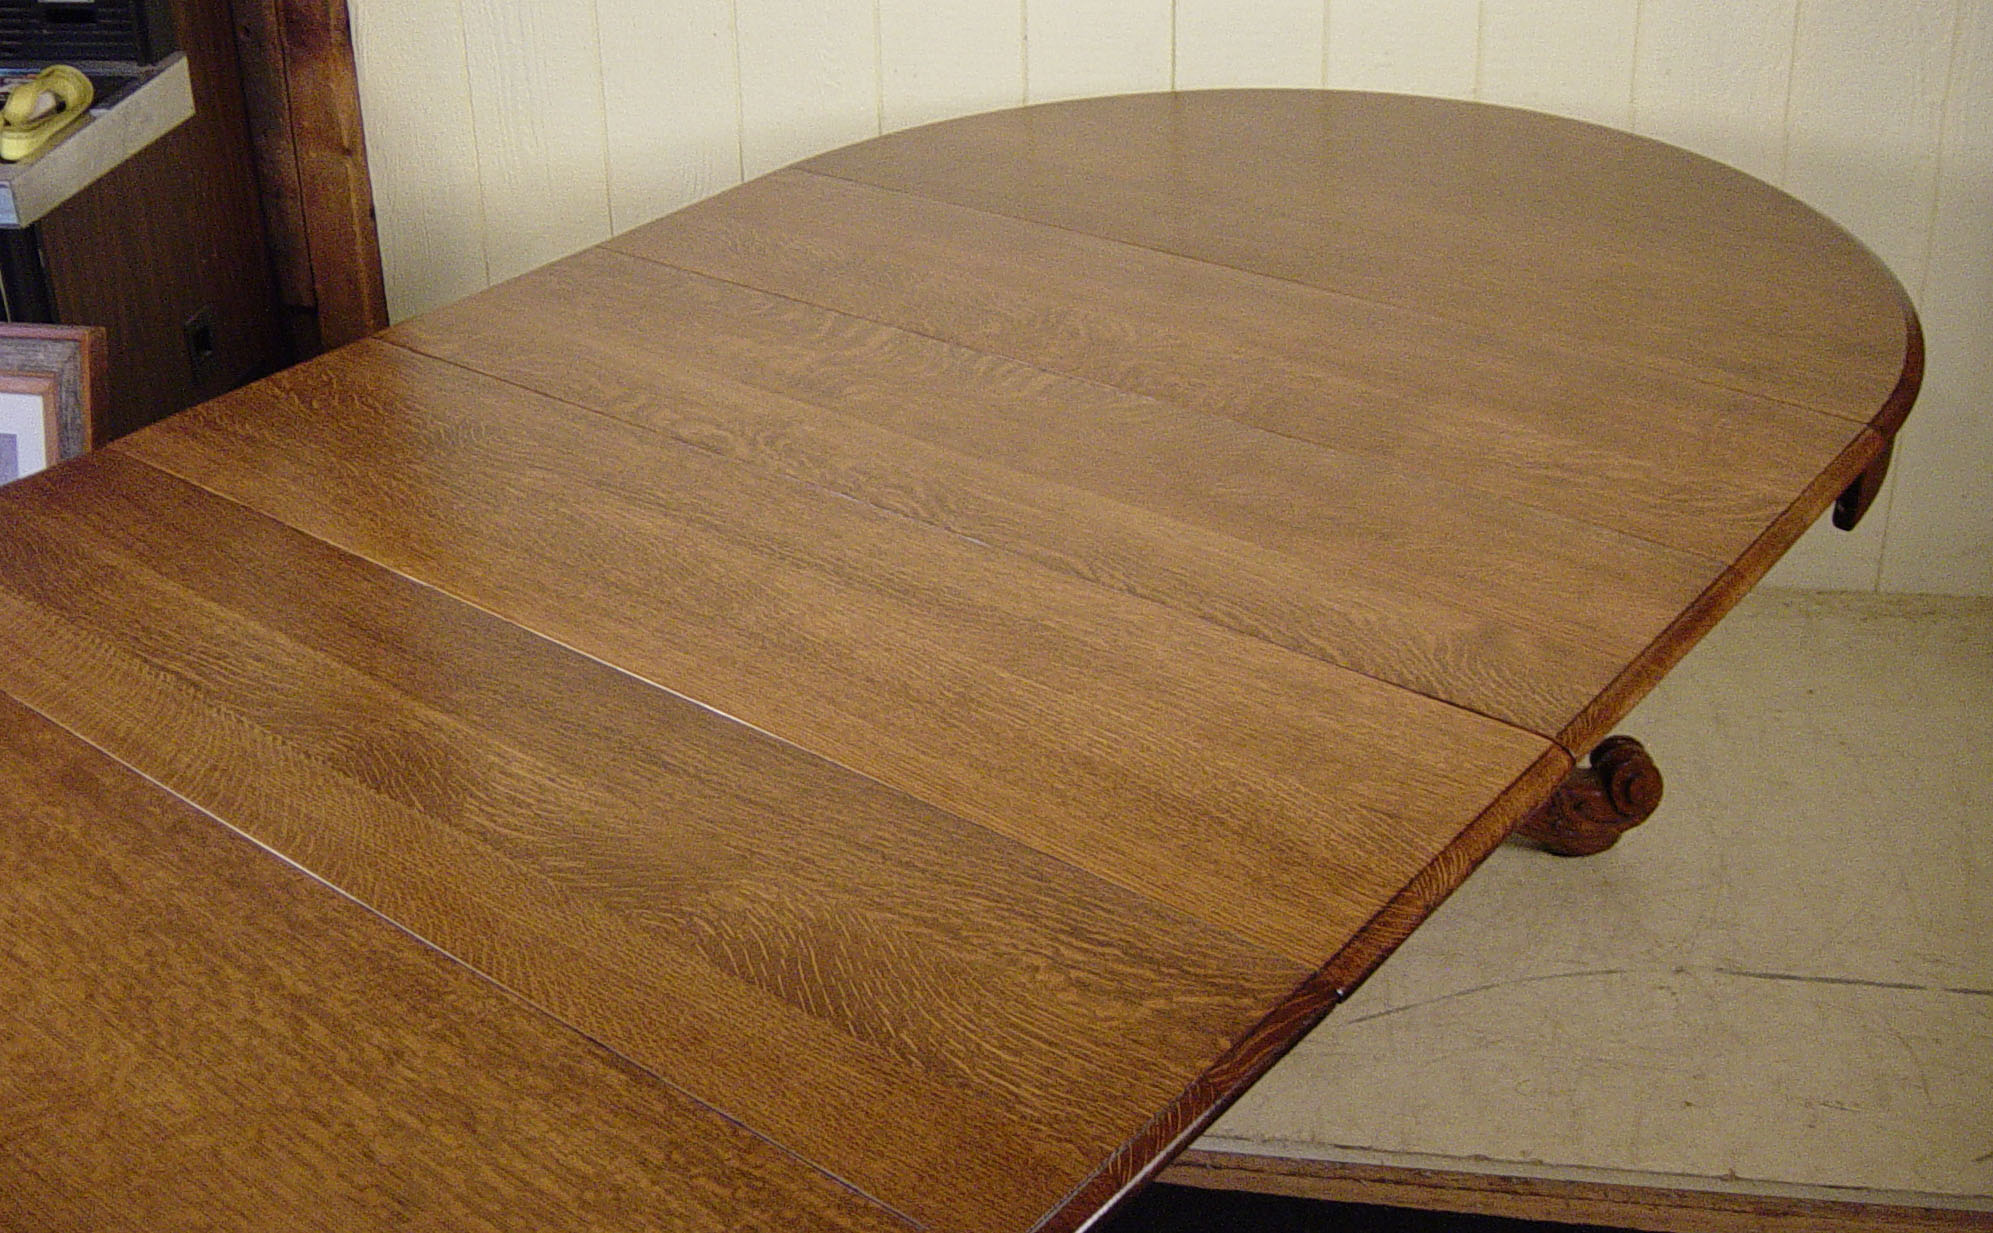 "Round Dining Table 52 Inch: 52"" Round Victorian Oak Dining Room Table With 4 Leaves"